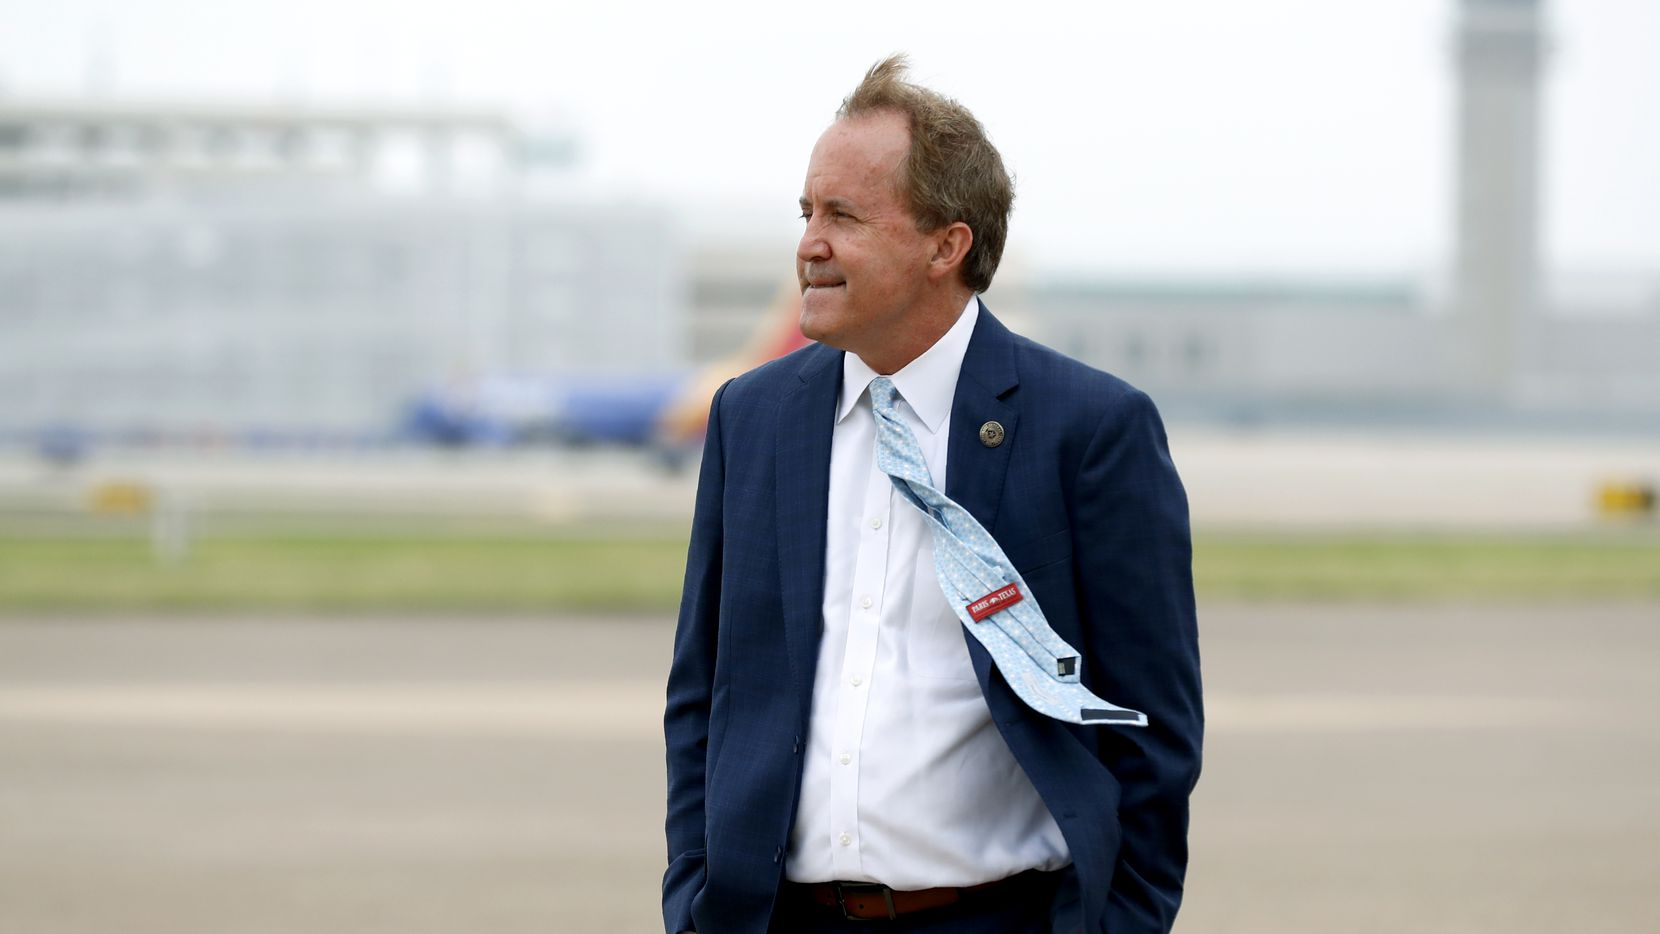 In this June 28, 2020 photo, Texas Attorney General Ken Paxton waits for the arrival of Vice President Mike Pence at Love Field in Dallas.